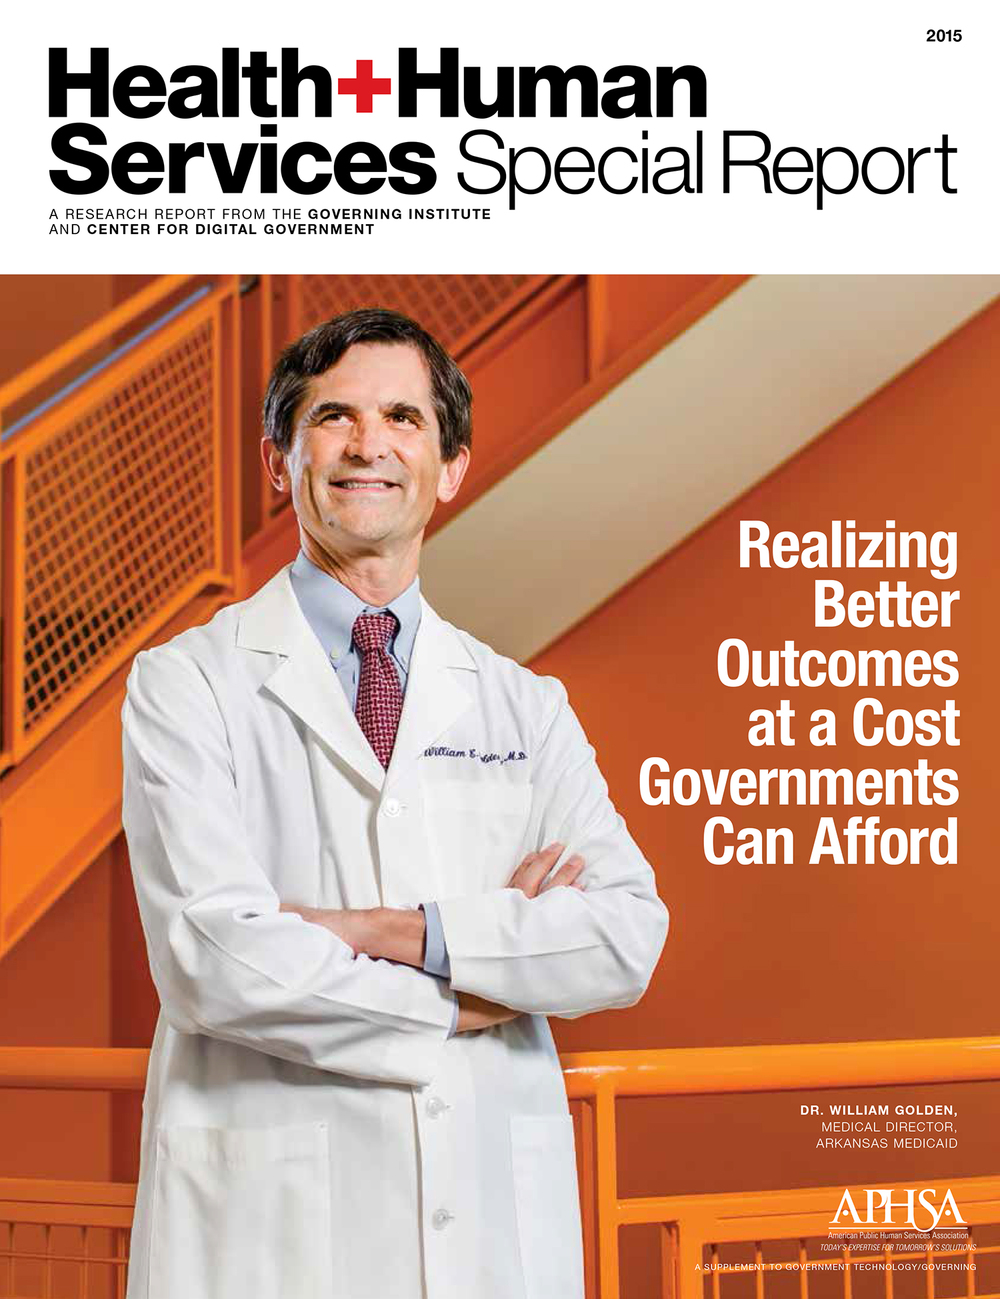 Health and Human Services Special Report 2015